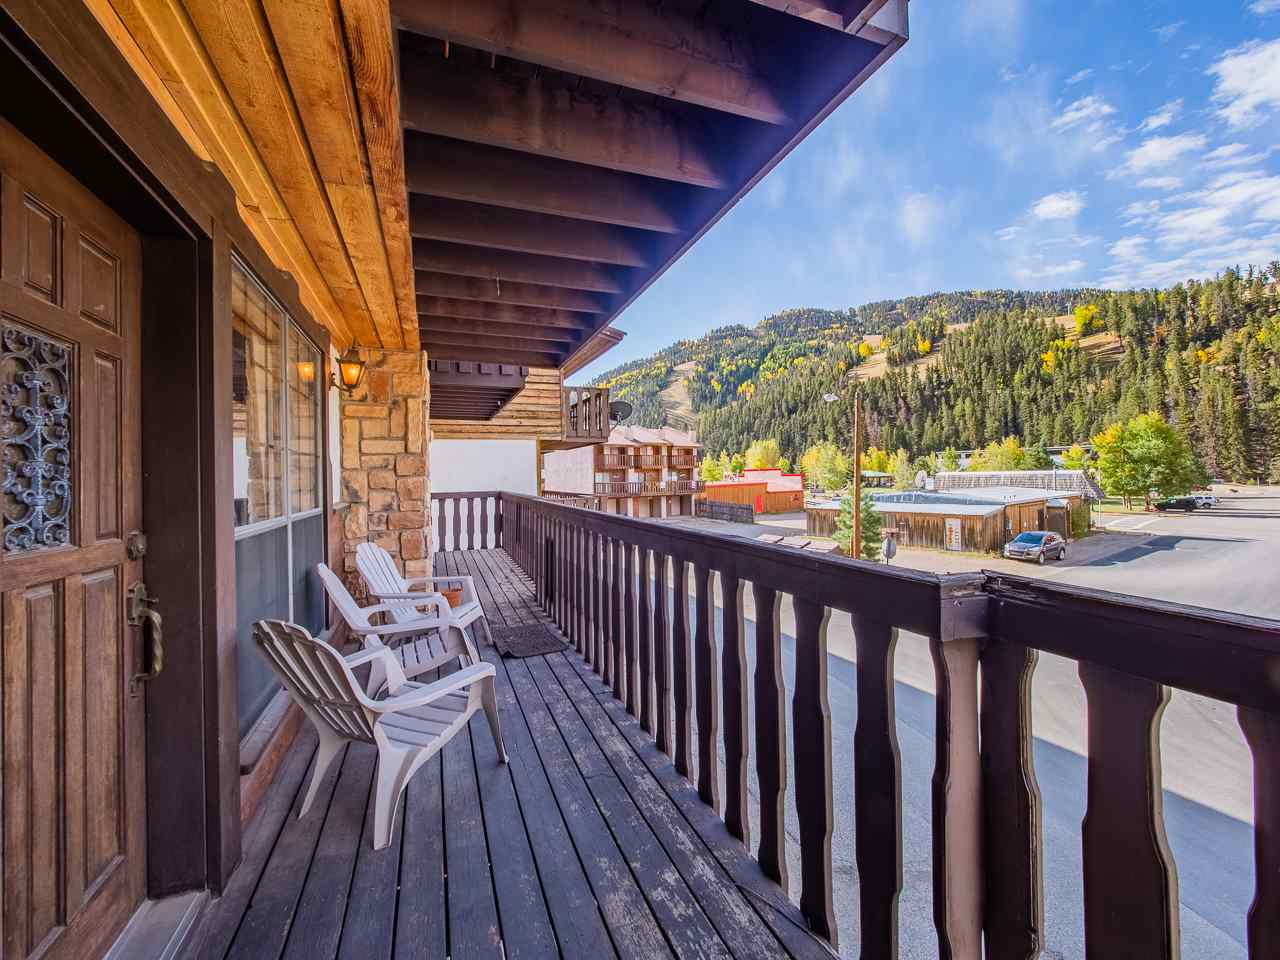 202 High St Flagg Mountain Townhouses 12 Unit 8, Red River, NM 87558